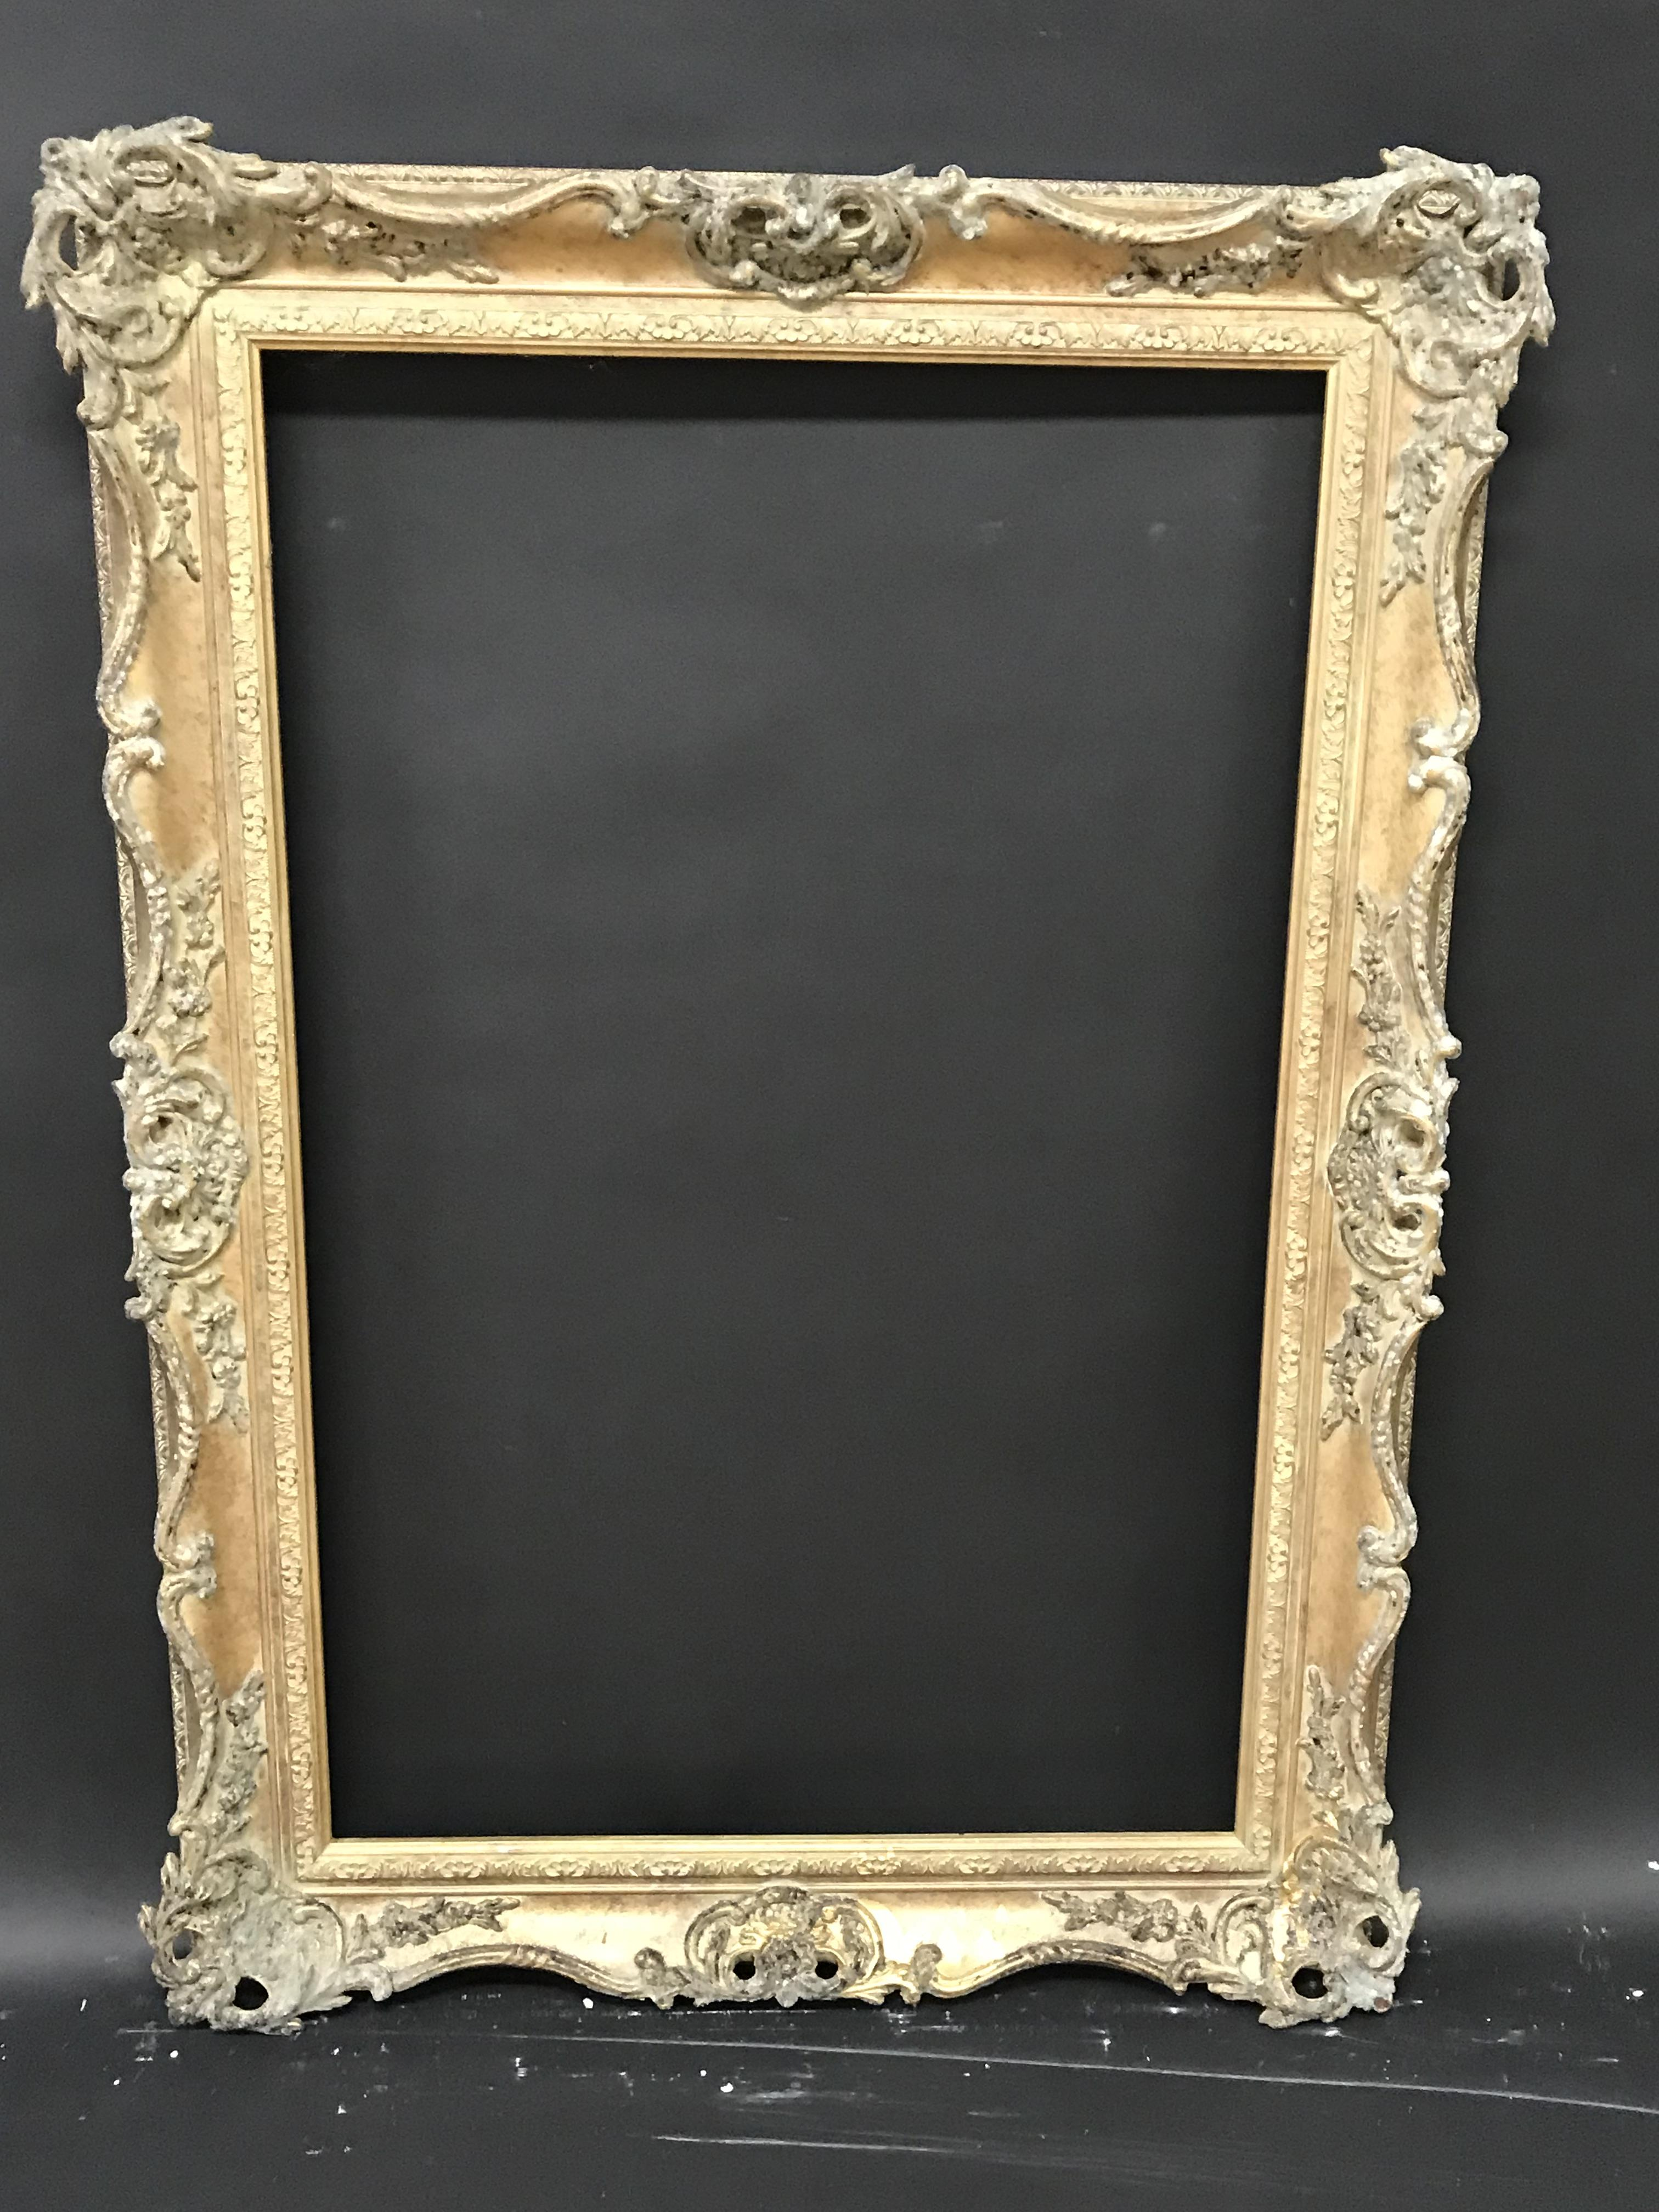 Lot 19 - 20th Century English School. A Gilt Composition Frame, with Swept and Pierced Centres and Corners,